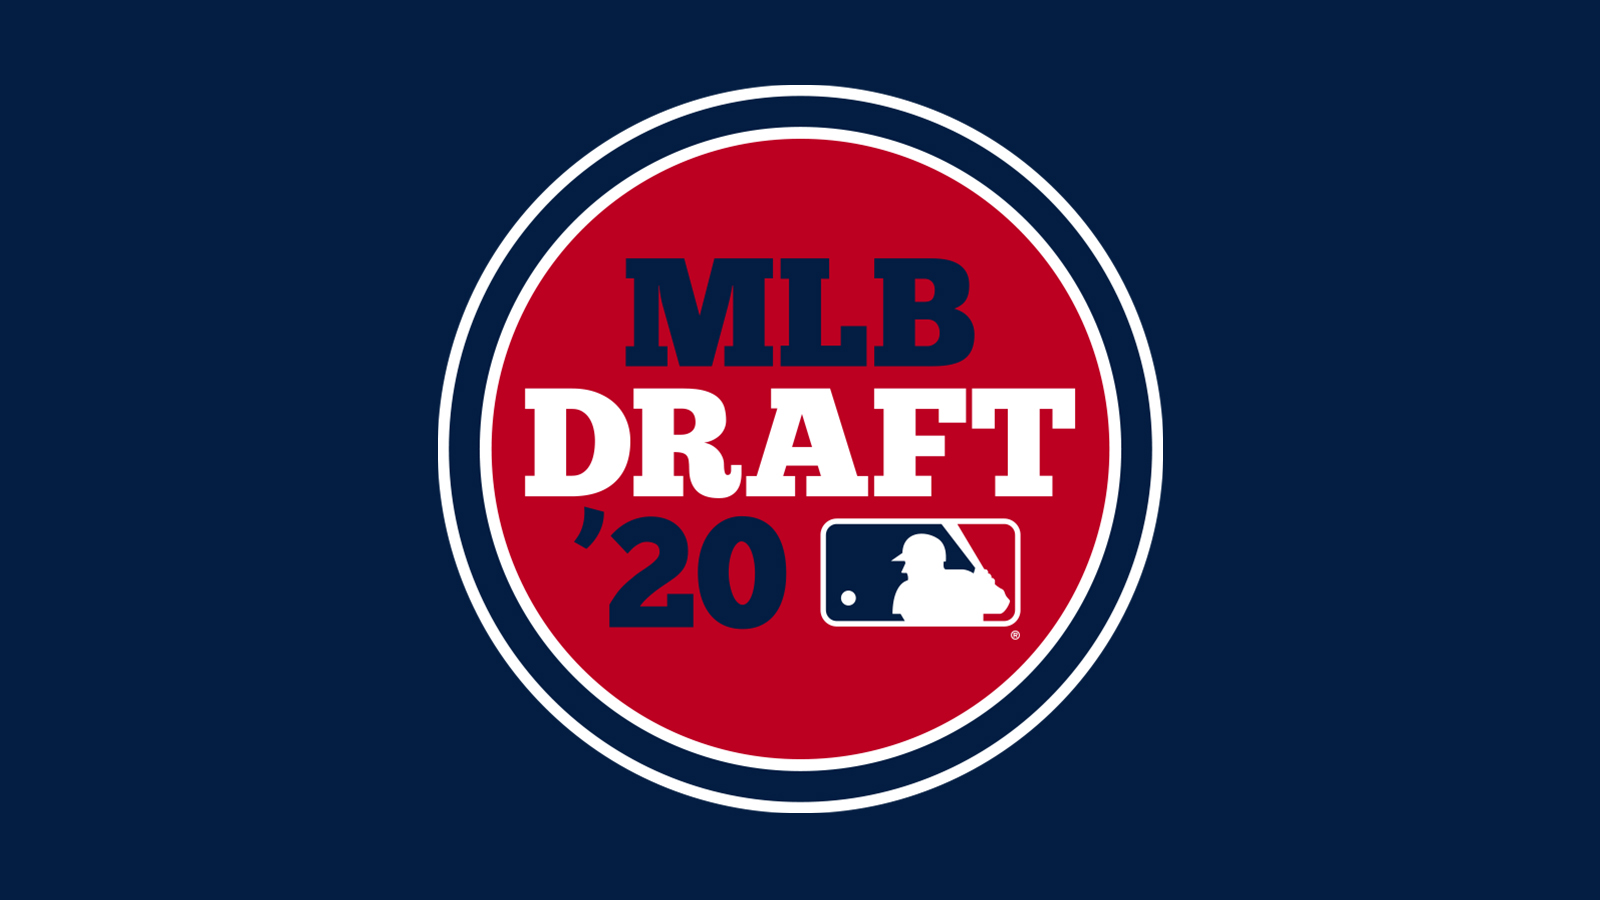 MLB Draft order 2020: Updated list of picks for all 5 rounds & competitive balance selections 1